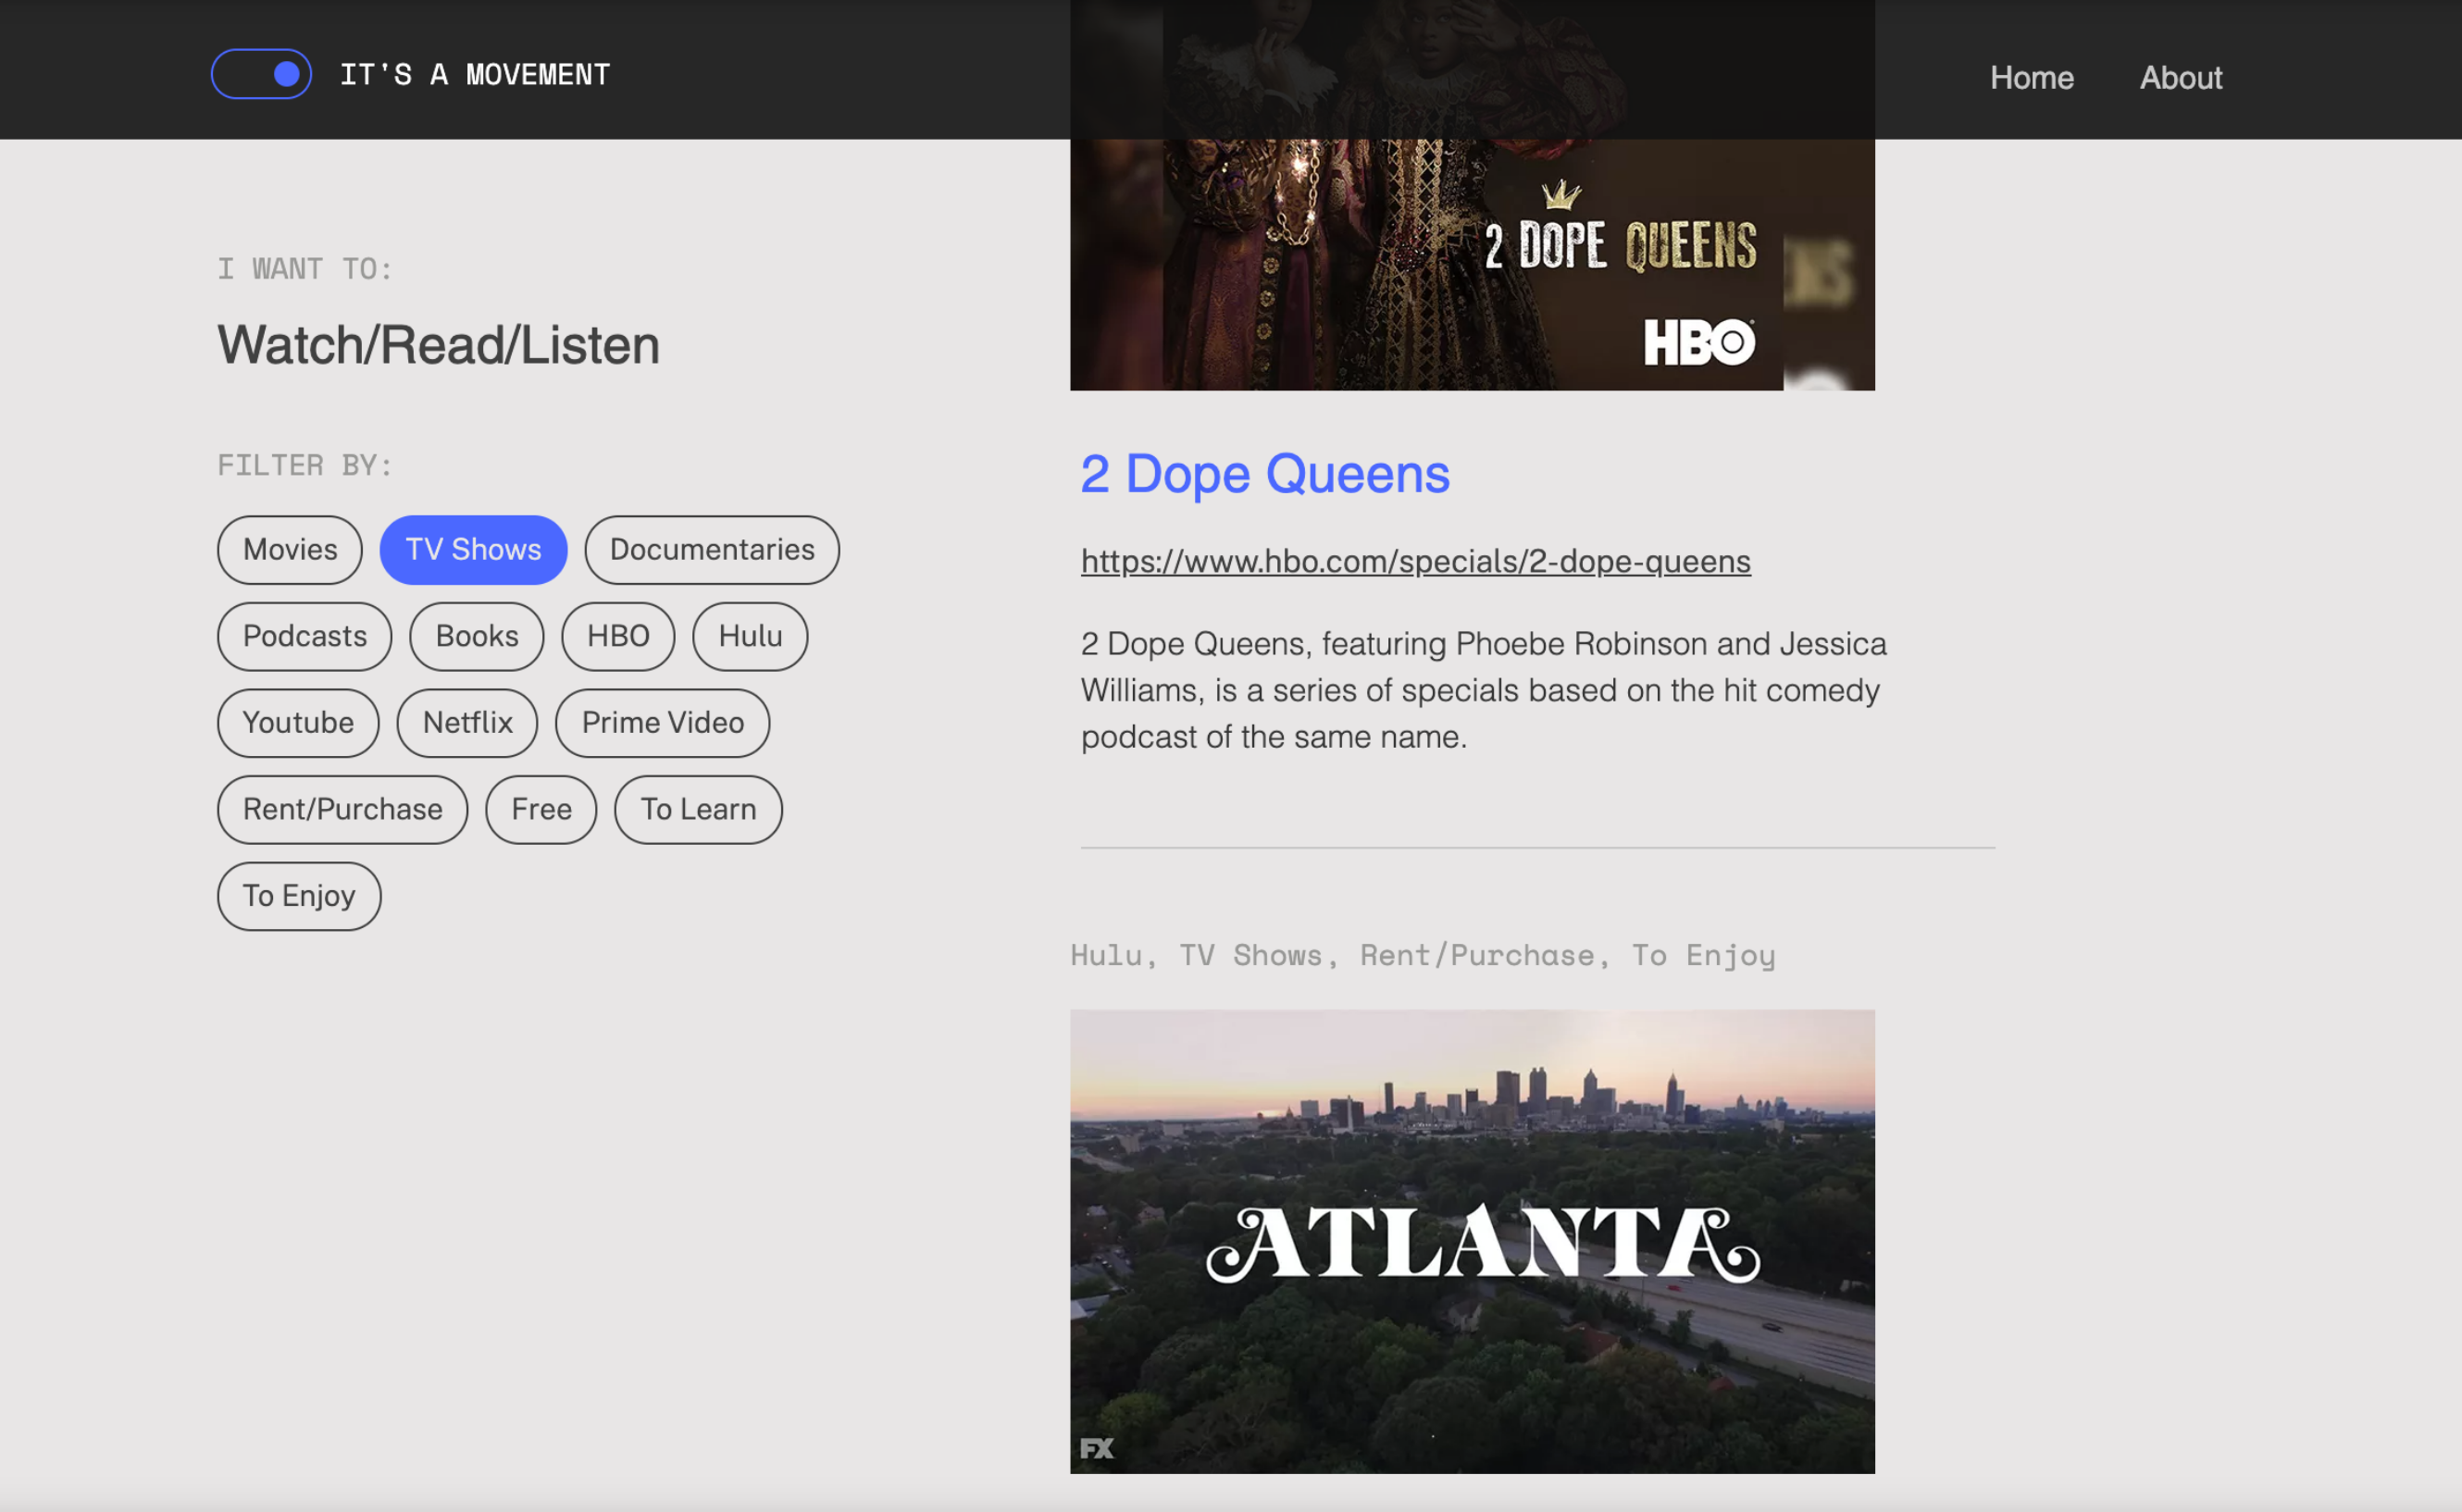 Screenshot of notamoment.com showing the Watch/Read/listen page with filter tabs featuring categories such as movies, podcasts, netfilx, free, etc.